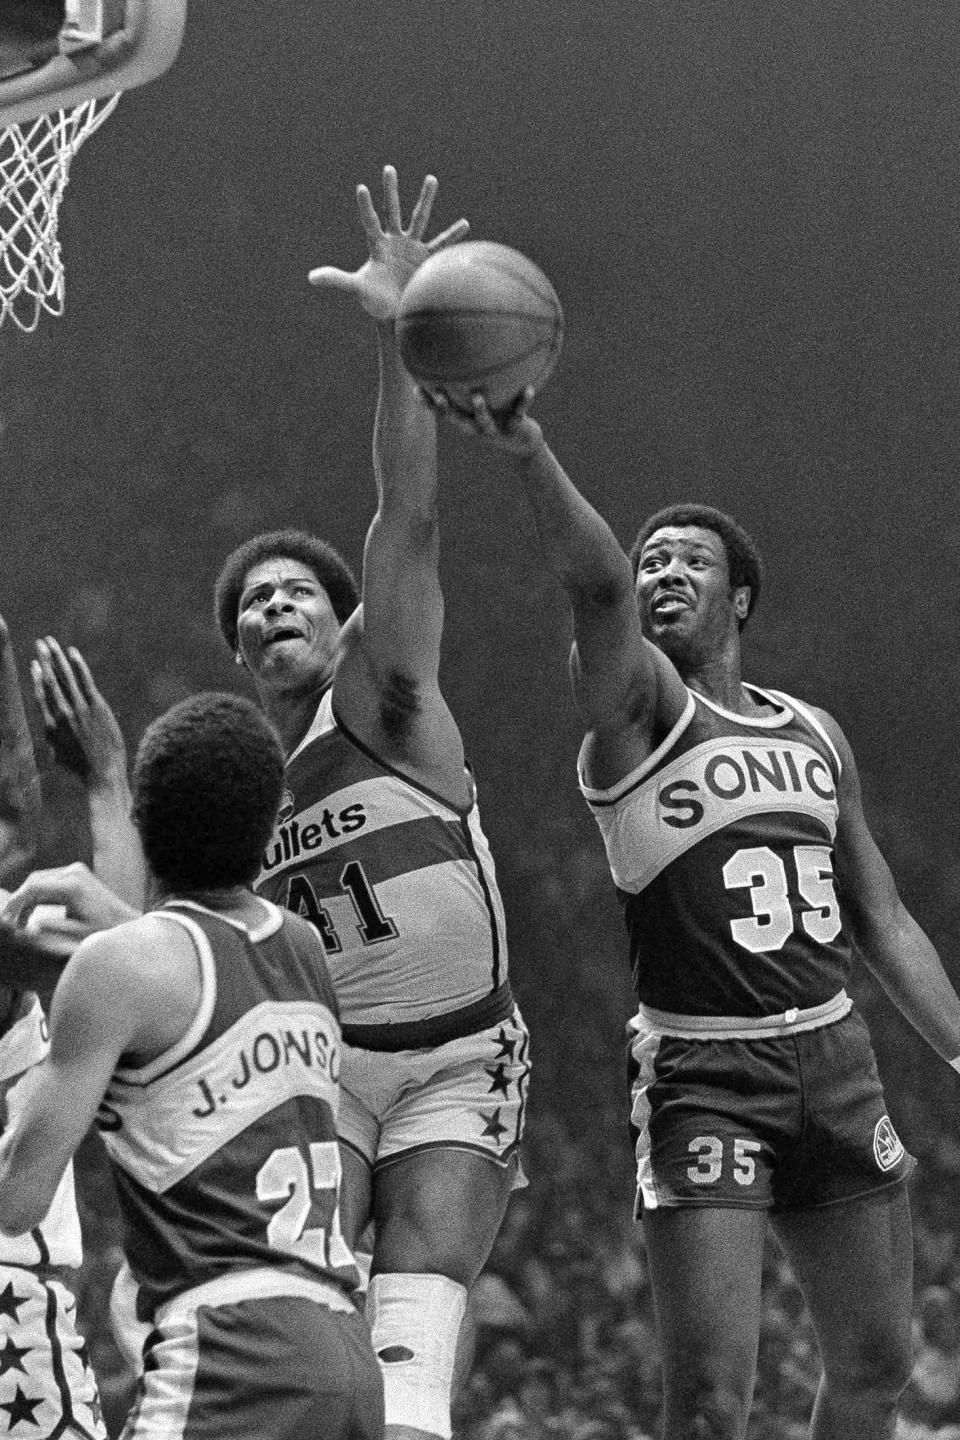 FILE - In this May 25, 1979, file photo, Washington Bullets' Wes Unseld (41) reaches to block a shot by Seattle Supersonics' Paul Silas ()35) during an NBA basketball game in Landover, Md. Unseld, the Hall of Fame center who led Washington to its only NBA championship and was chosen one of the 50 greatest players in league history, died Tuesday, June 2, 2020, after a series of health issues, most recently pneumonia. He was 74. (AP Photo/Smith, File)